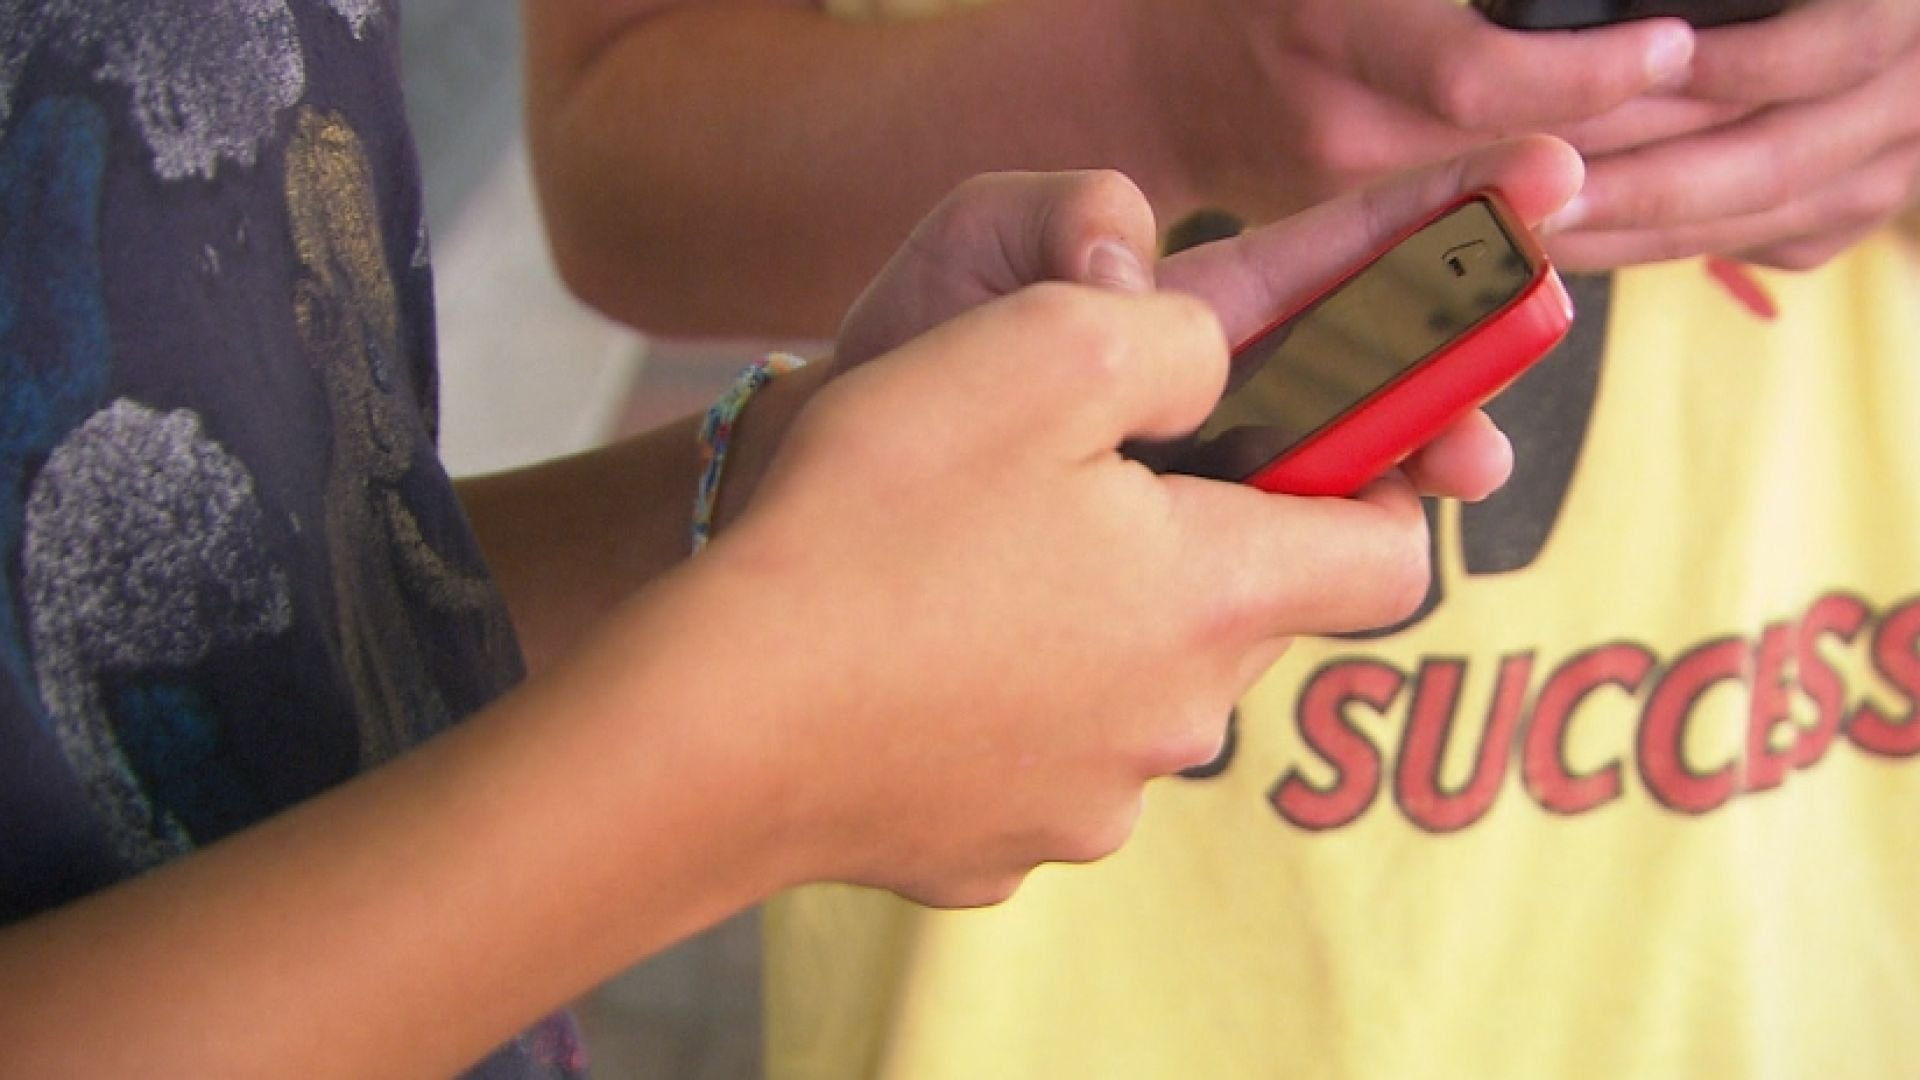 A new app designed to provide an anonymous platform for feedback among adults is gaining popularity with teens...and cyberbullies.